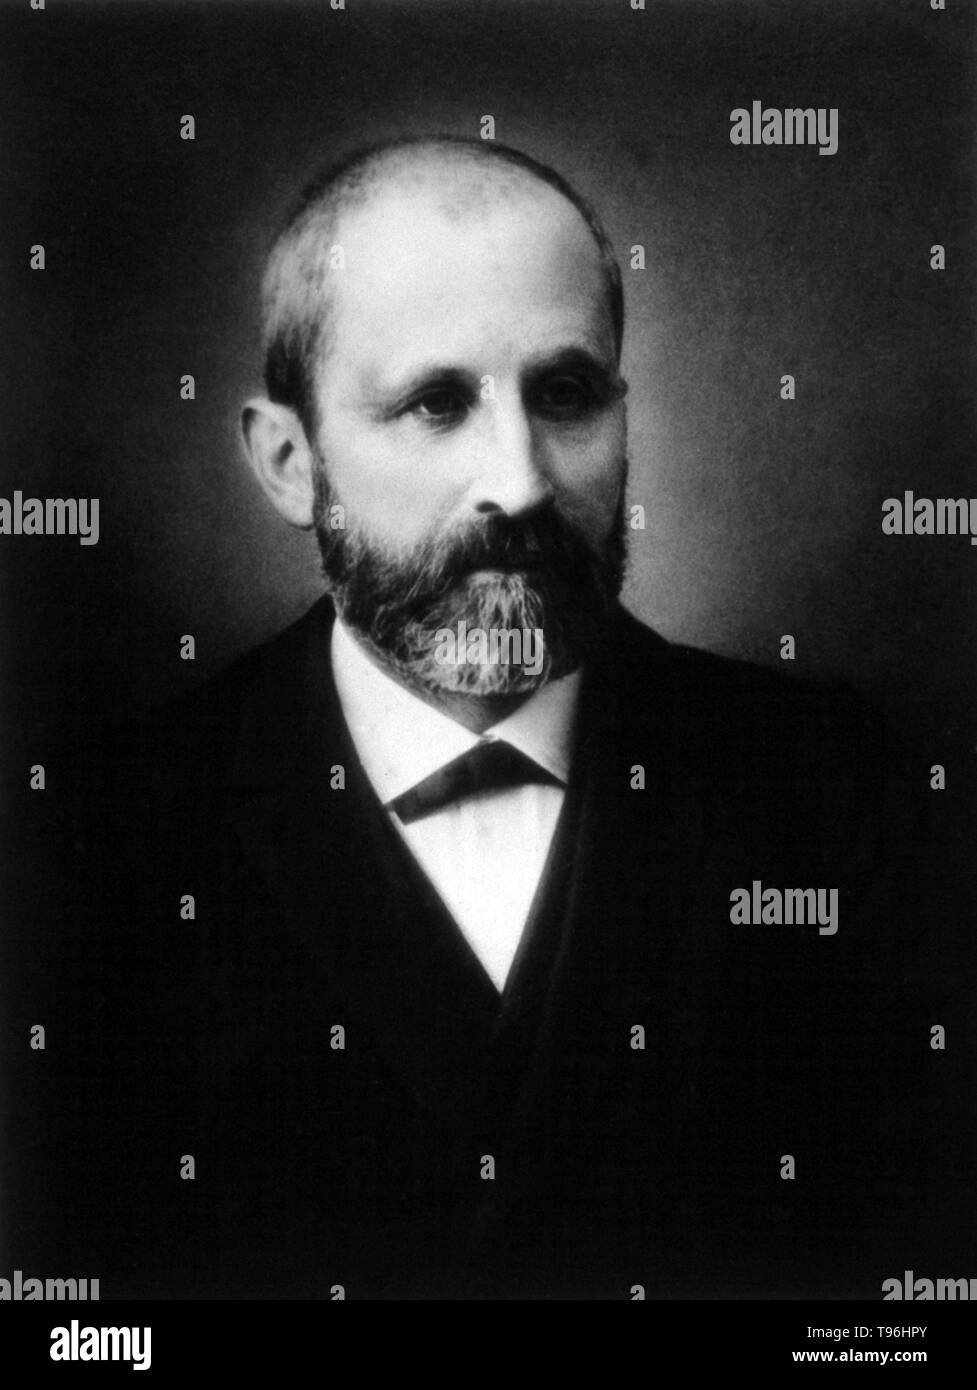 Johannes Friedrich Miescher (August 13, 1844 - August 26, 1895) was a Swiss physician and biologist. Miescher isolated various phosphate-rich chemicals, which he called nuclein (now nucleic acids), from the nuclei of white blood cells in 1869, paving the way for the identification of DNA as the carrier of inheritance. The significance of the discovery, first published in 1871, was not at first apparent, and it was Albrecht Kossel who made the initial inquiries into its chemical structure. - Stock Image